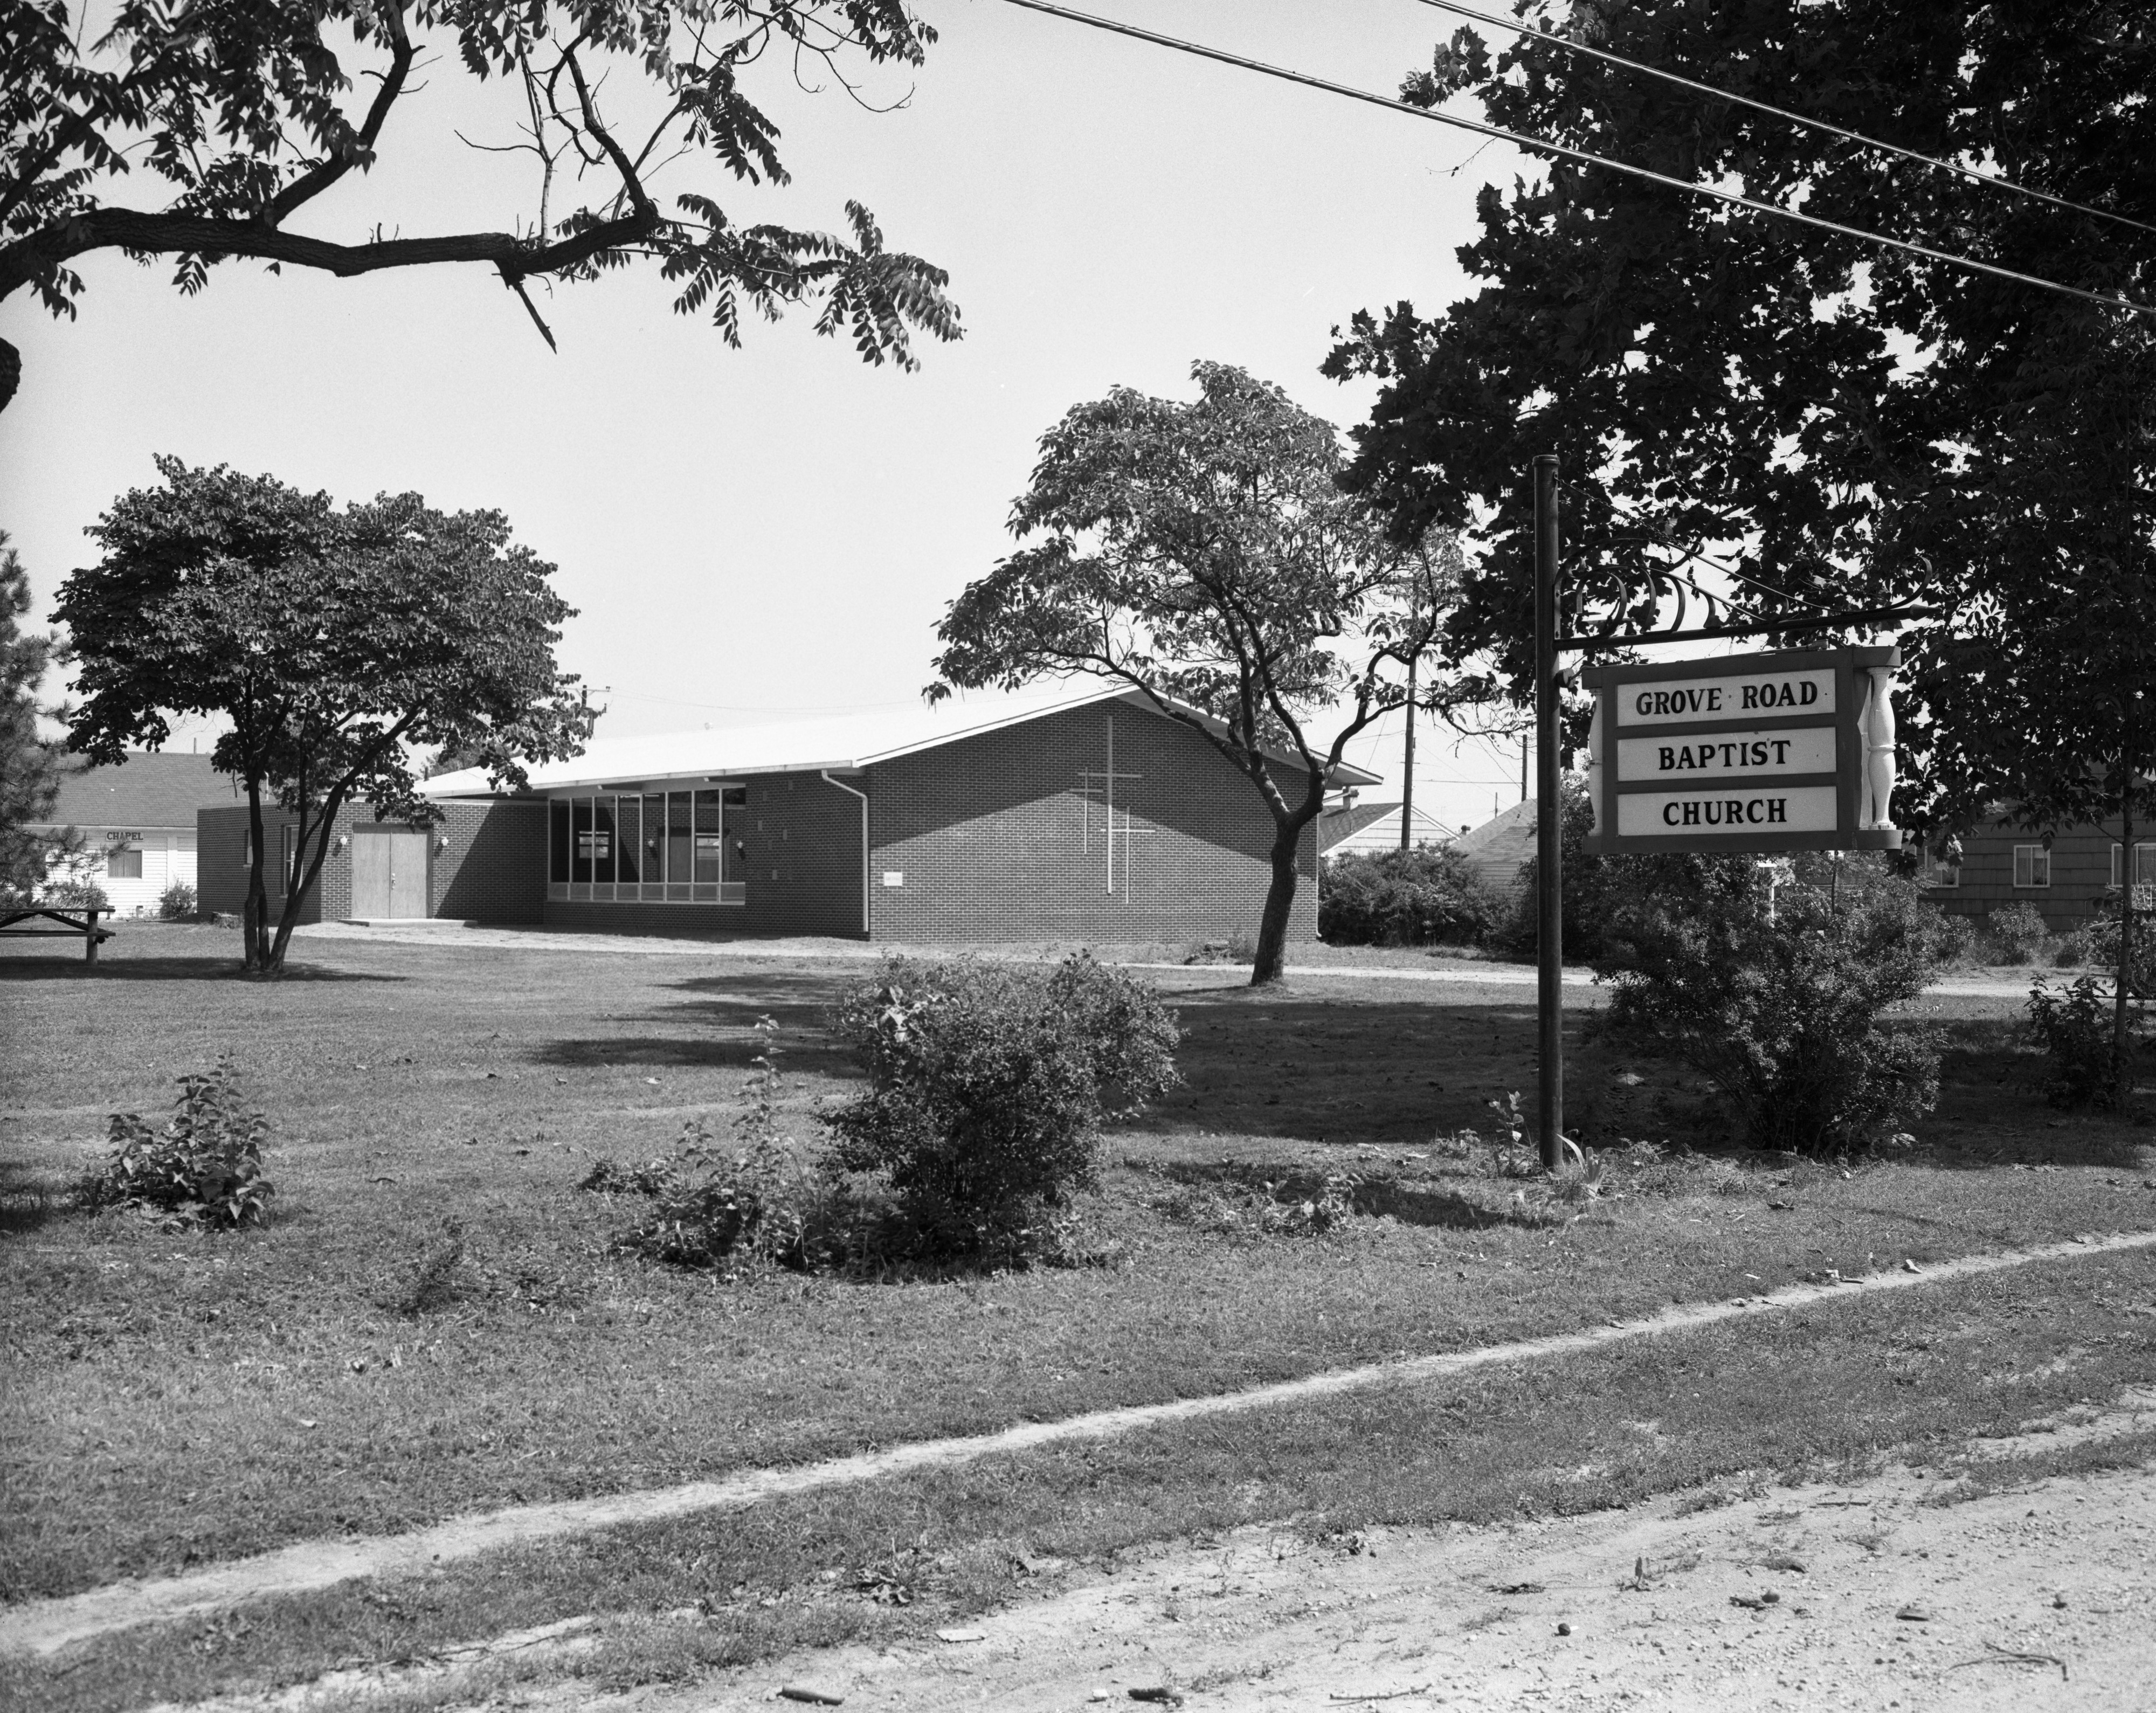 Grove Road Baptist Church, August 1960 image